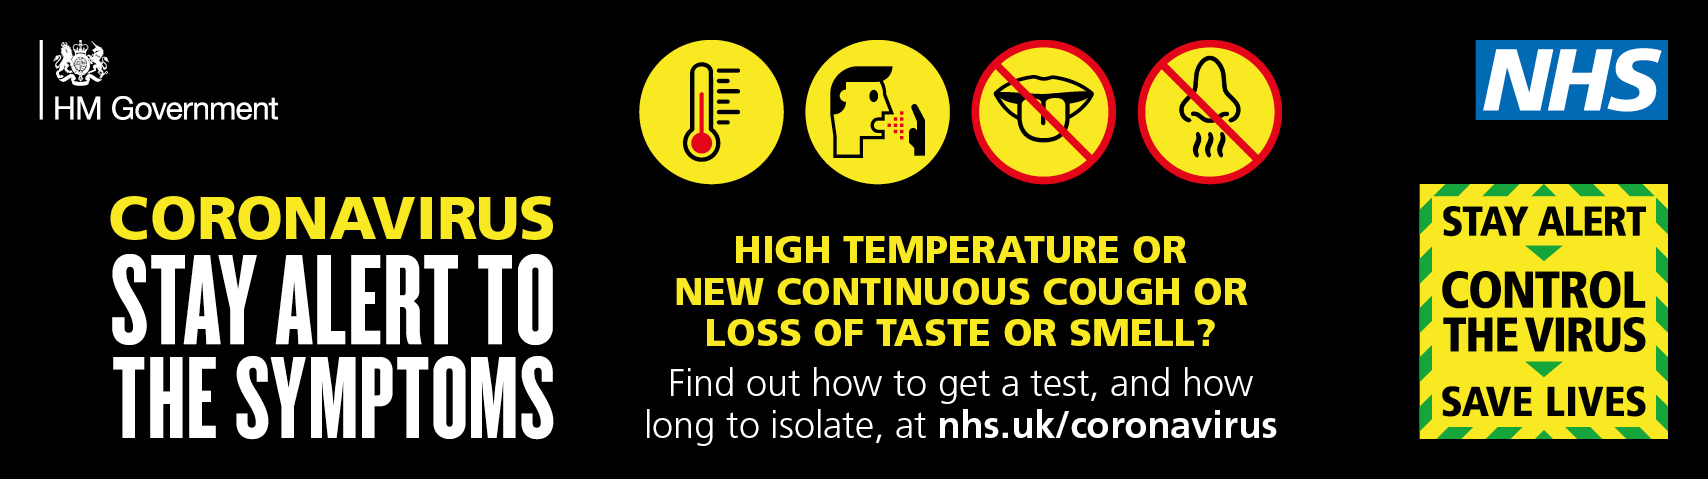 HIGH TEMPERATURE OR NEW CONTINUOUS COUGH OR LOSS OF TASTE OR SMELL? Find out how to get a test, and how long to isolate, at nhs.uk/coronavirus THE SYMPTOMS STAY ALERT TO CORONAVIRUS